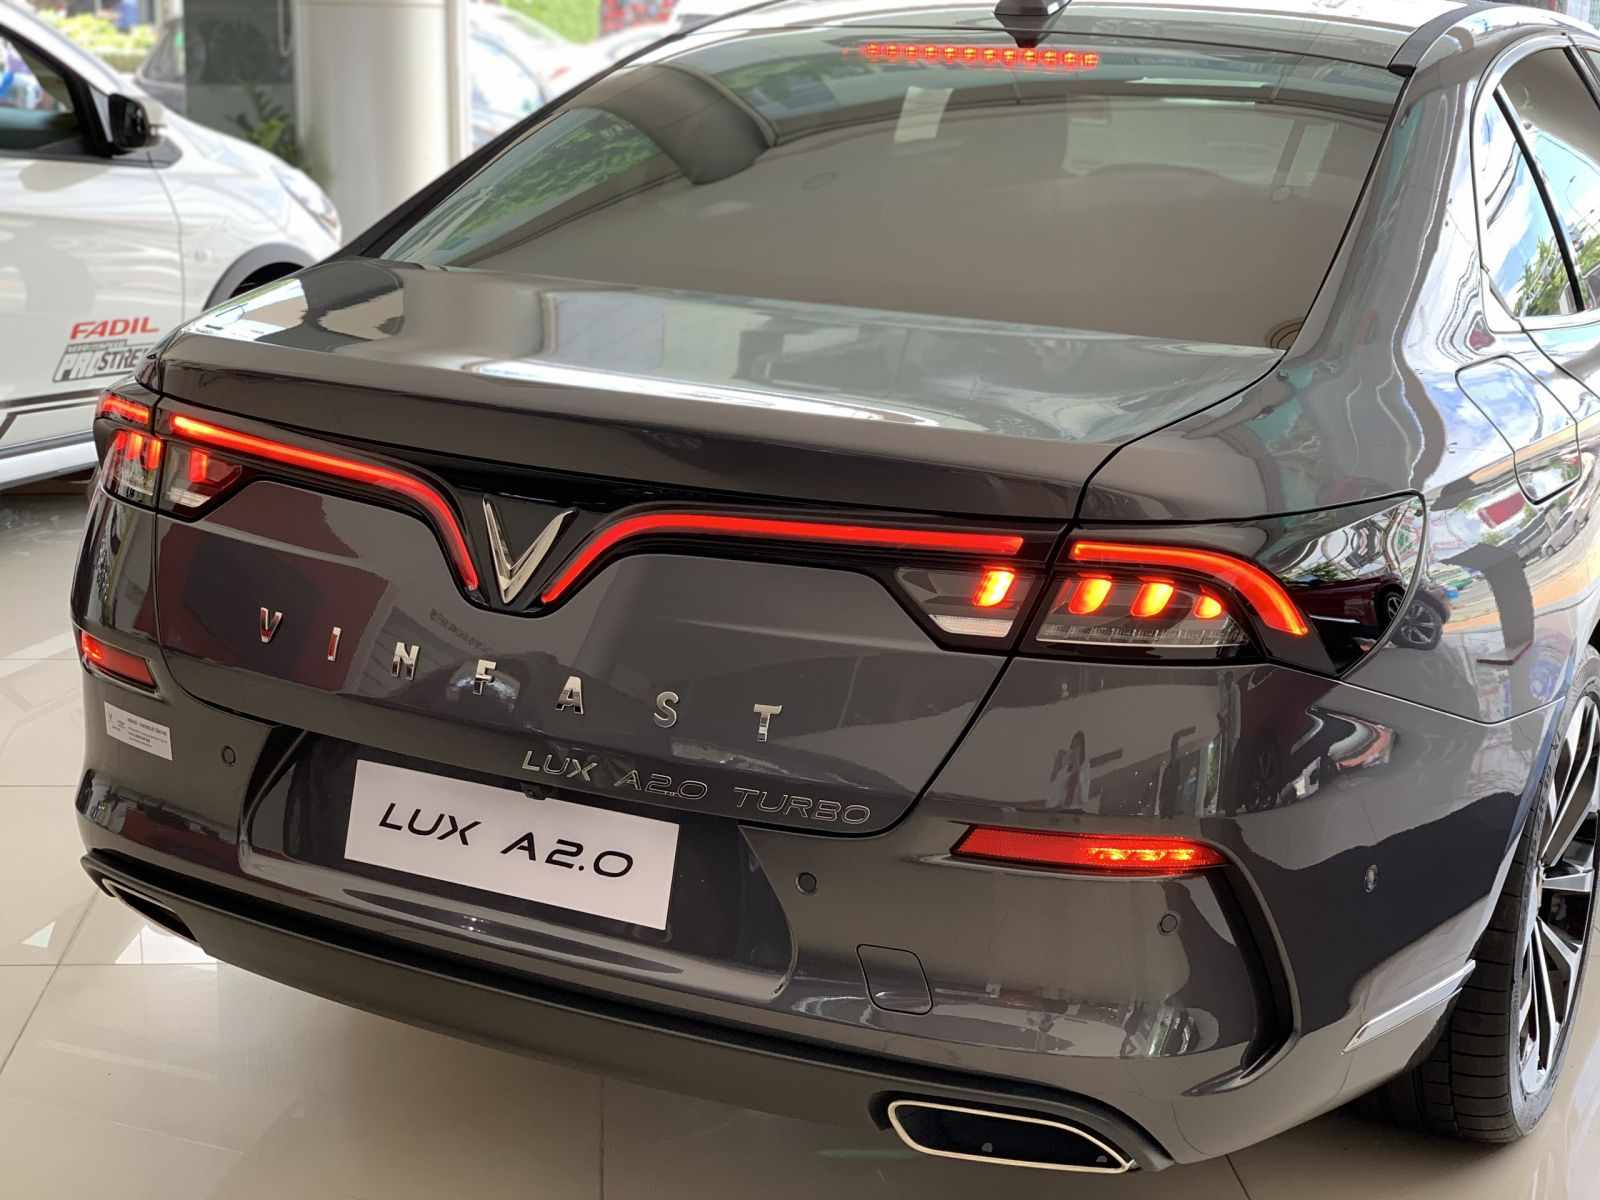 duoi xe lux a2.0